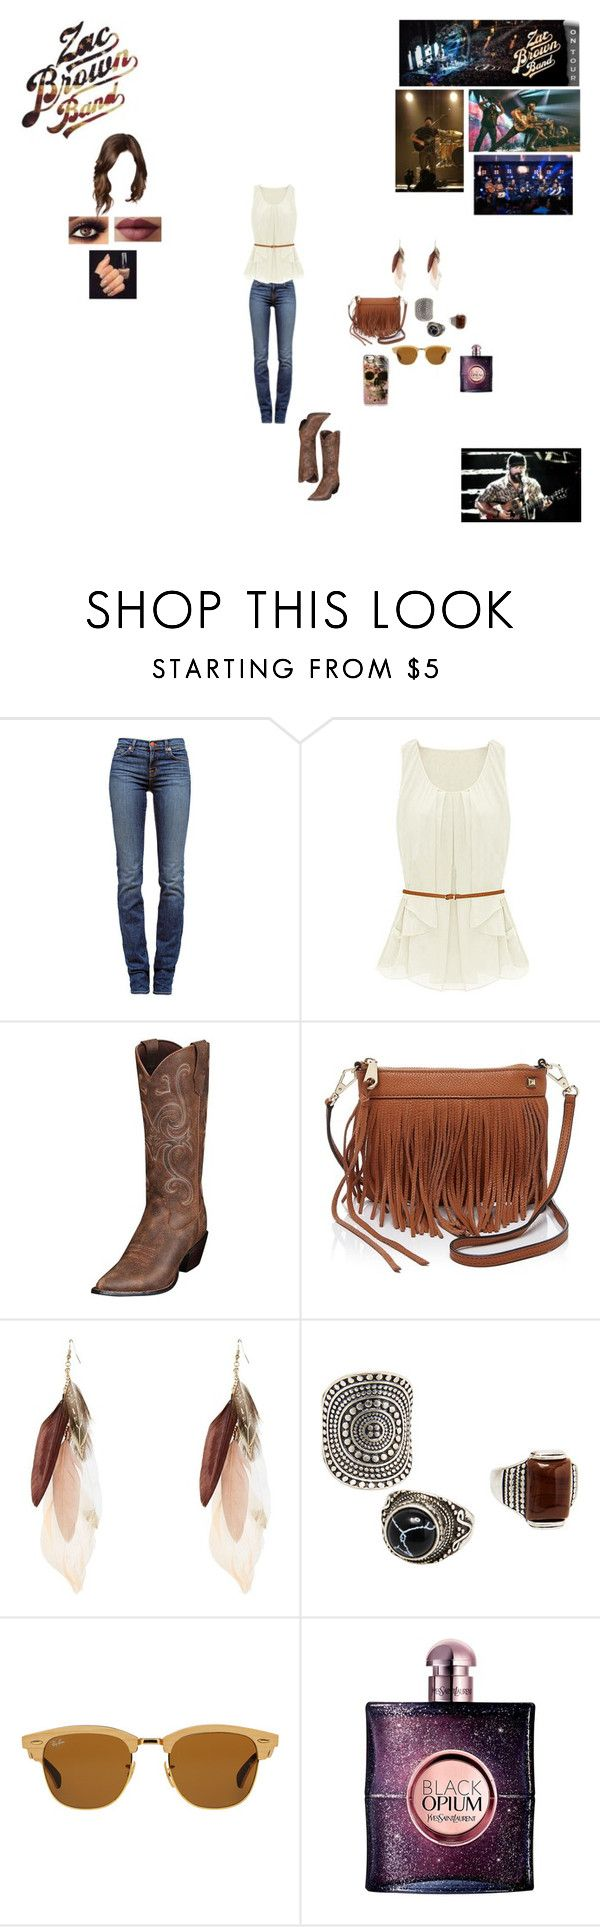 """""""Zac Brown Band Tour"""" by nikki-usmc92 ❤ liked on Polyvore featuring J Brand, Rebecca Minkoff, MANGO, Ray-Ban, Yves Saint Laurent and LORAC"""